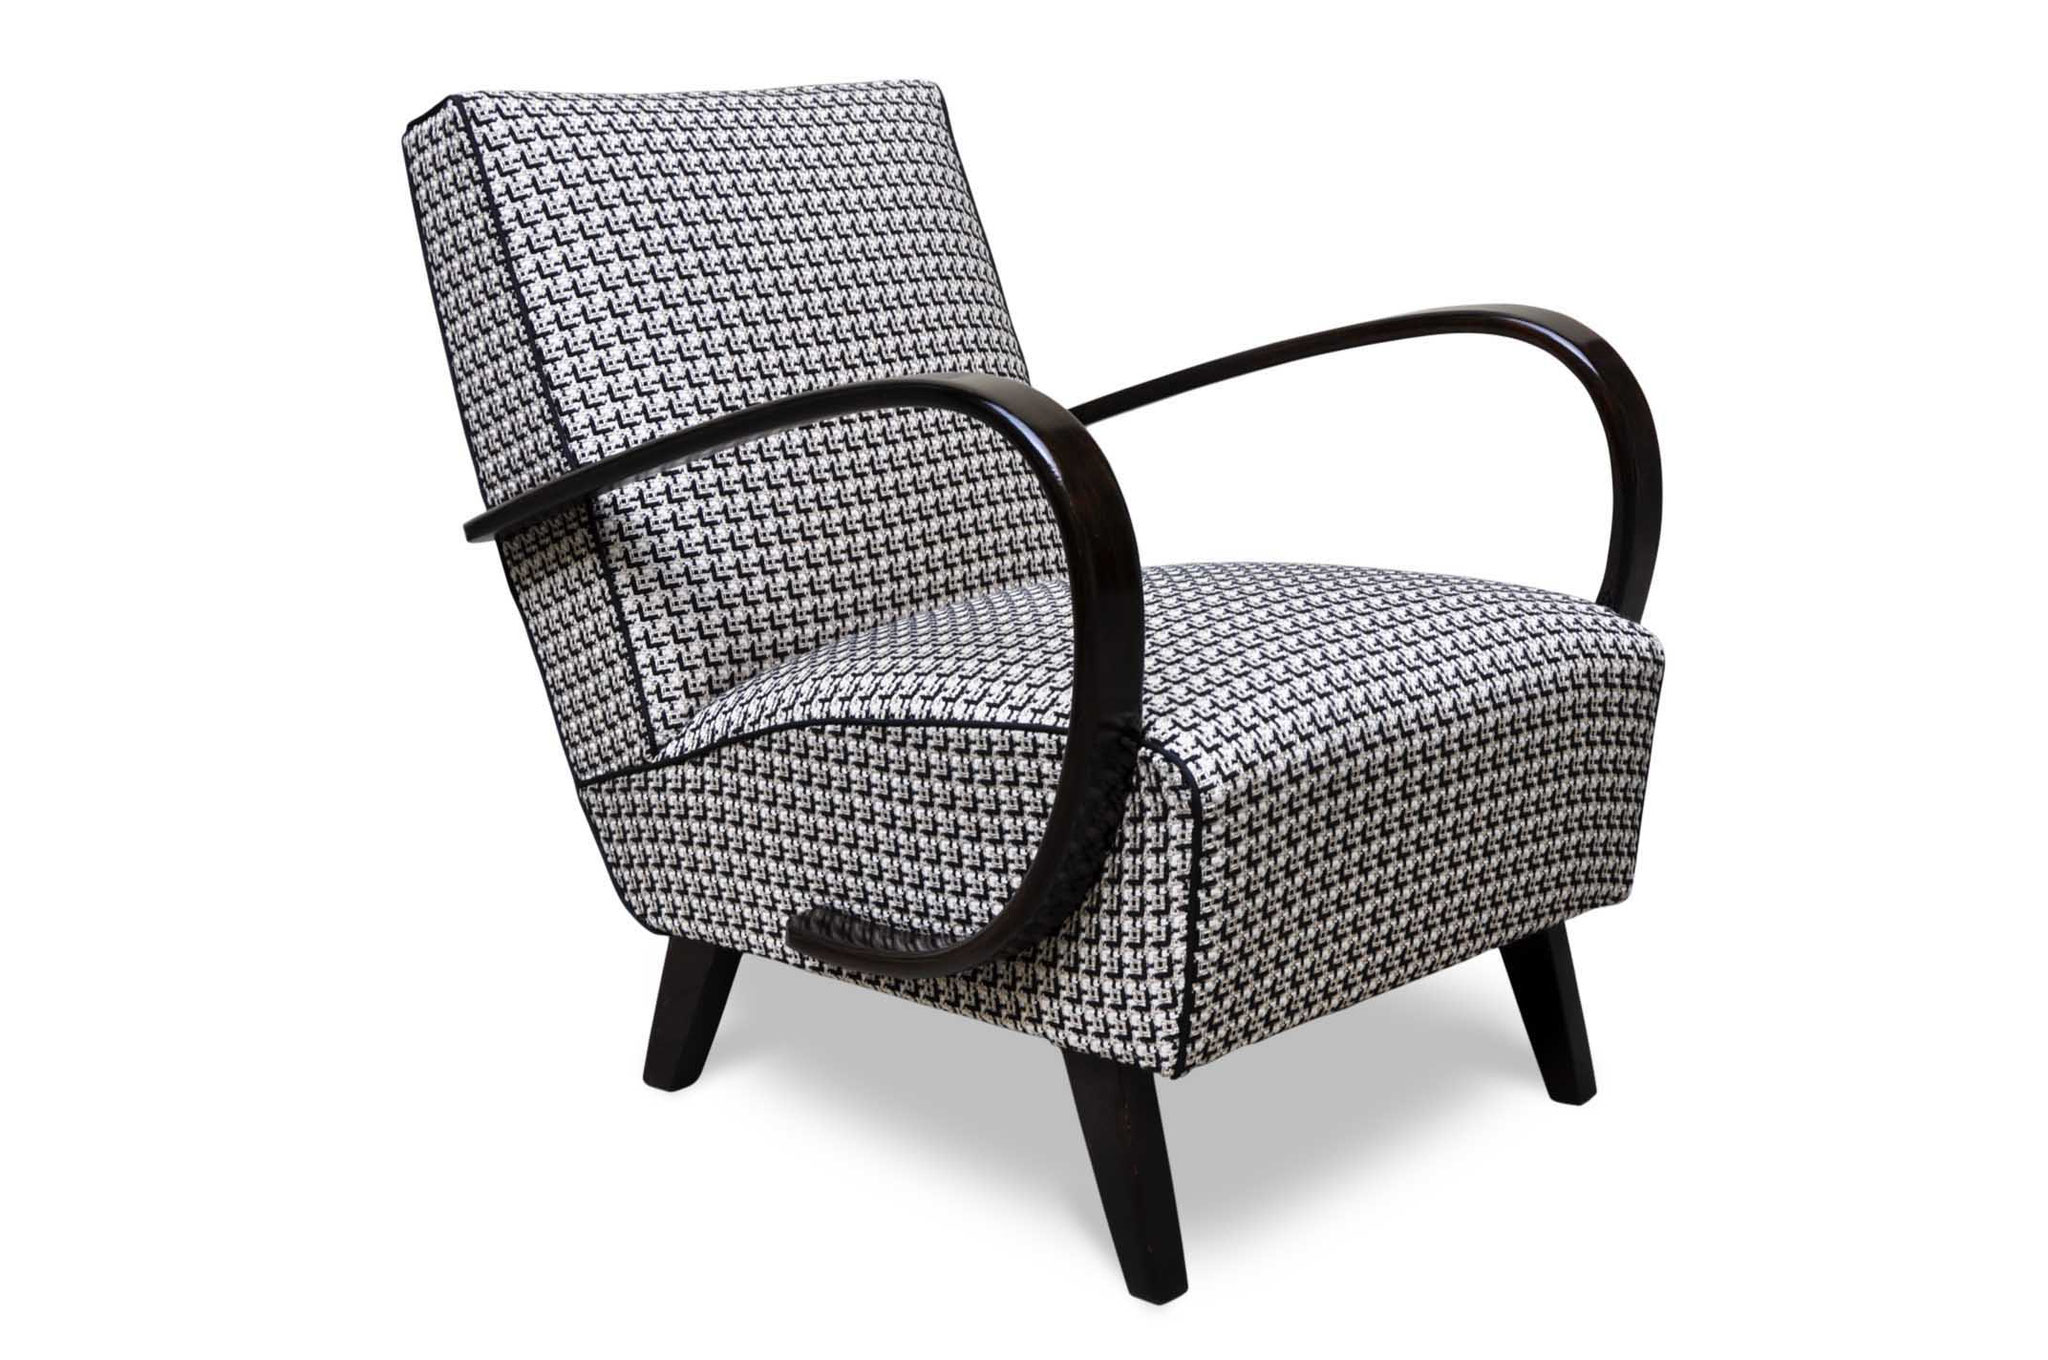 mid century chair in chanel fabric